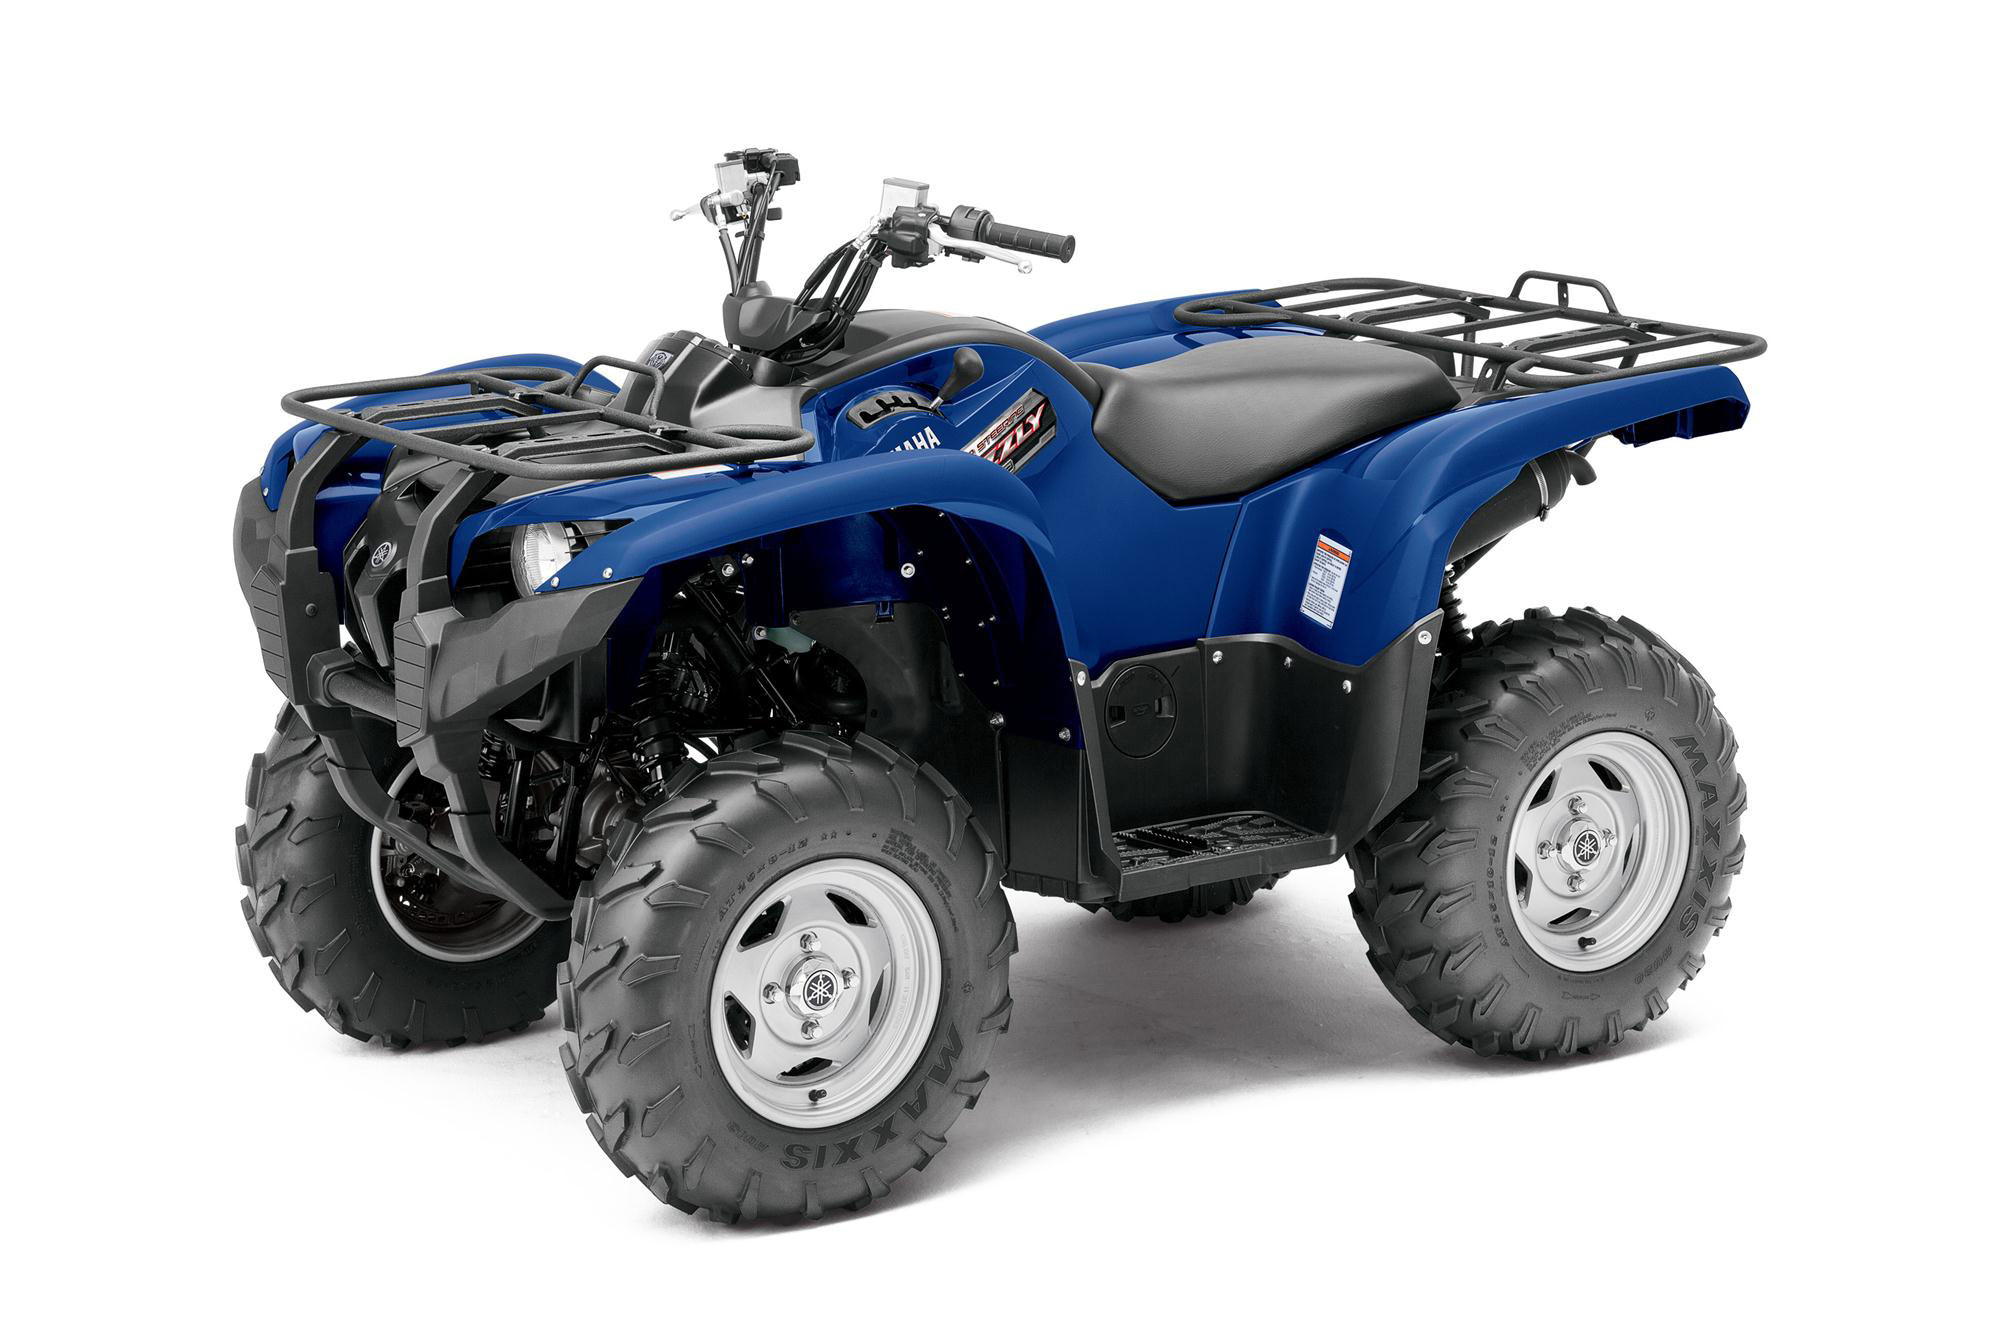 2013 yamaha grizzly 550 fi auto 4x4 eps review for Yamaha grizzly atv